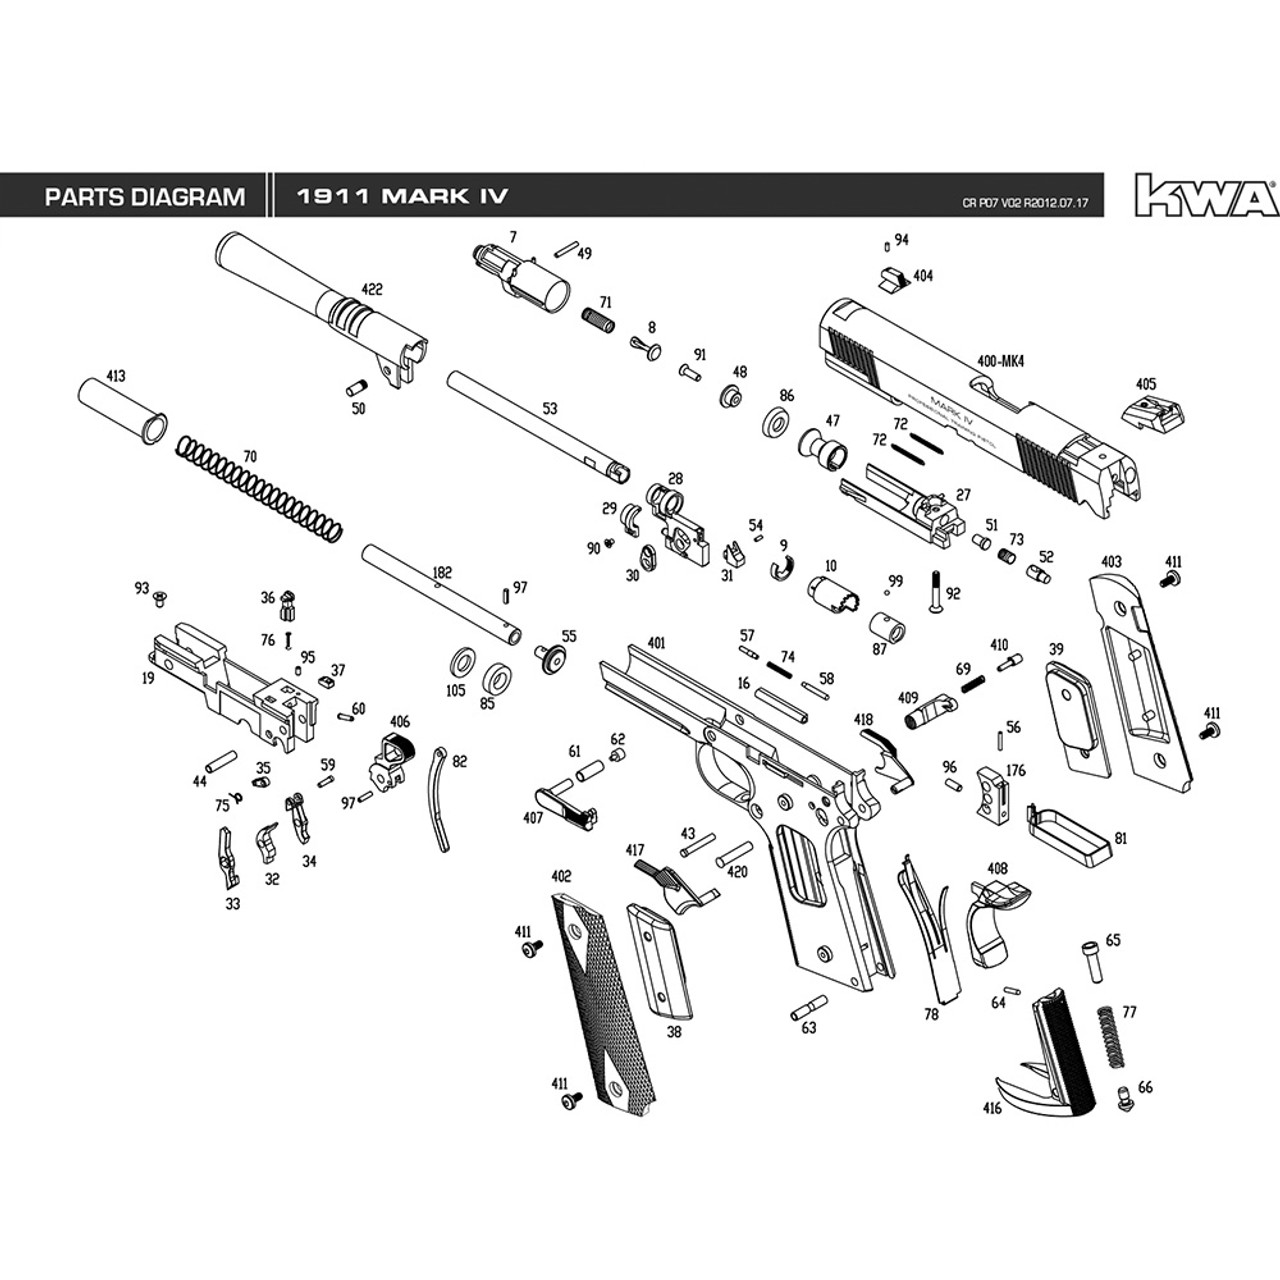 Pistol Barrel Diagram Furthermore Colt 1911 Parts Image Result For Exploded T Kimber Kwa Airsoft Mk Iv Mir Tactical Rh Mirtactical Com Sig Sauer 22